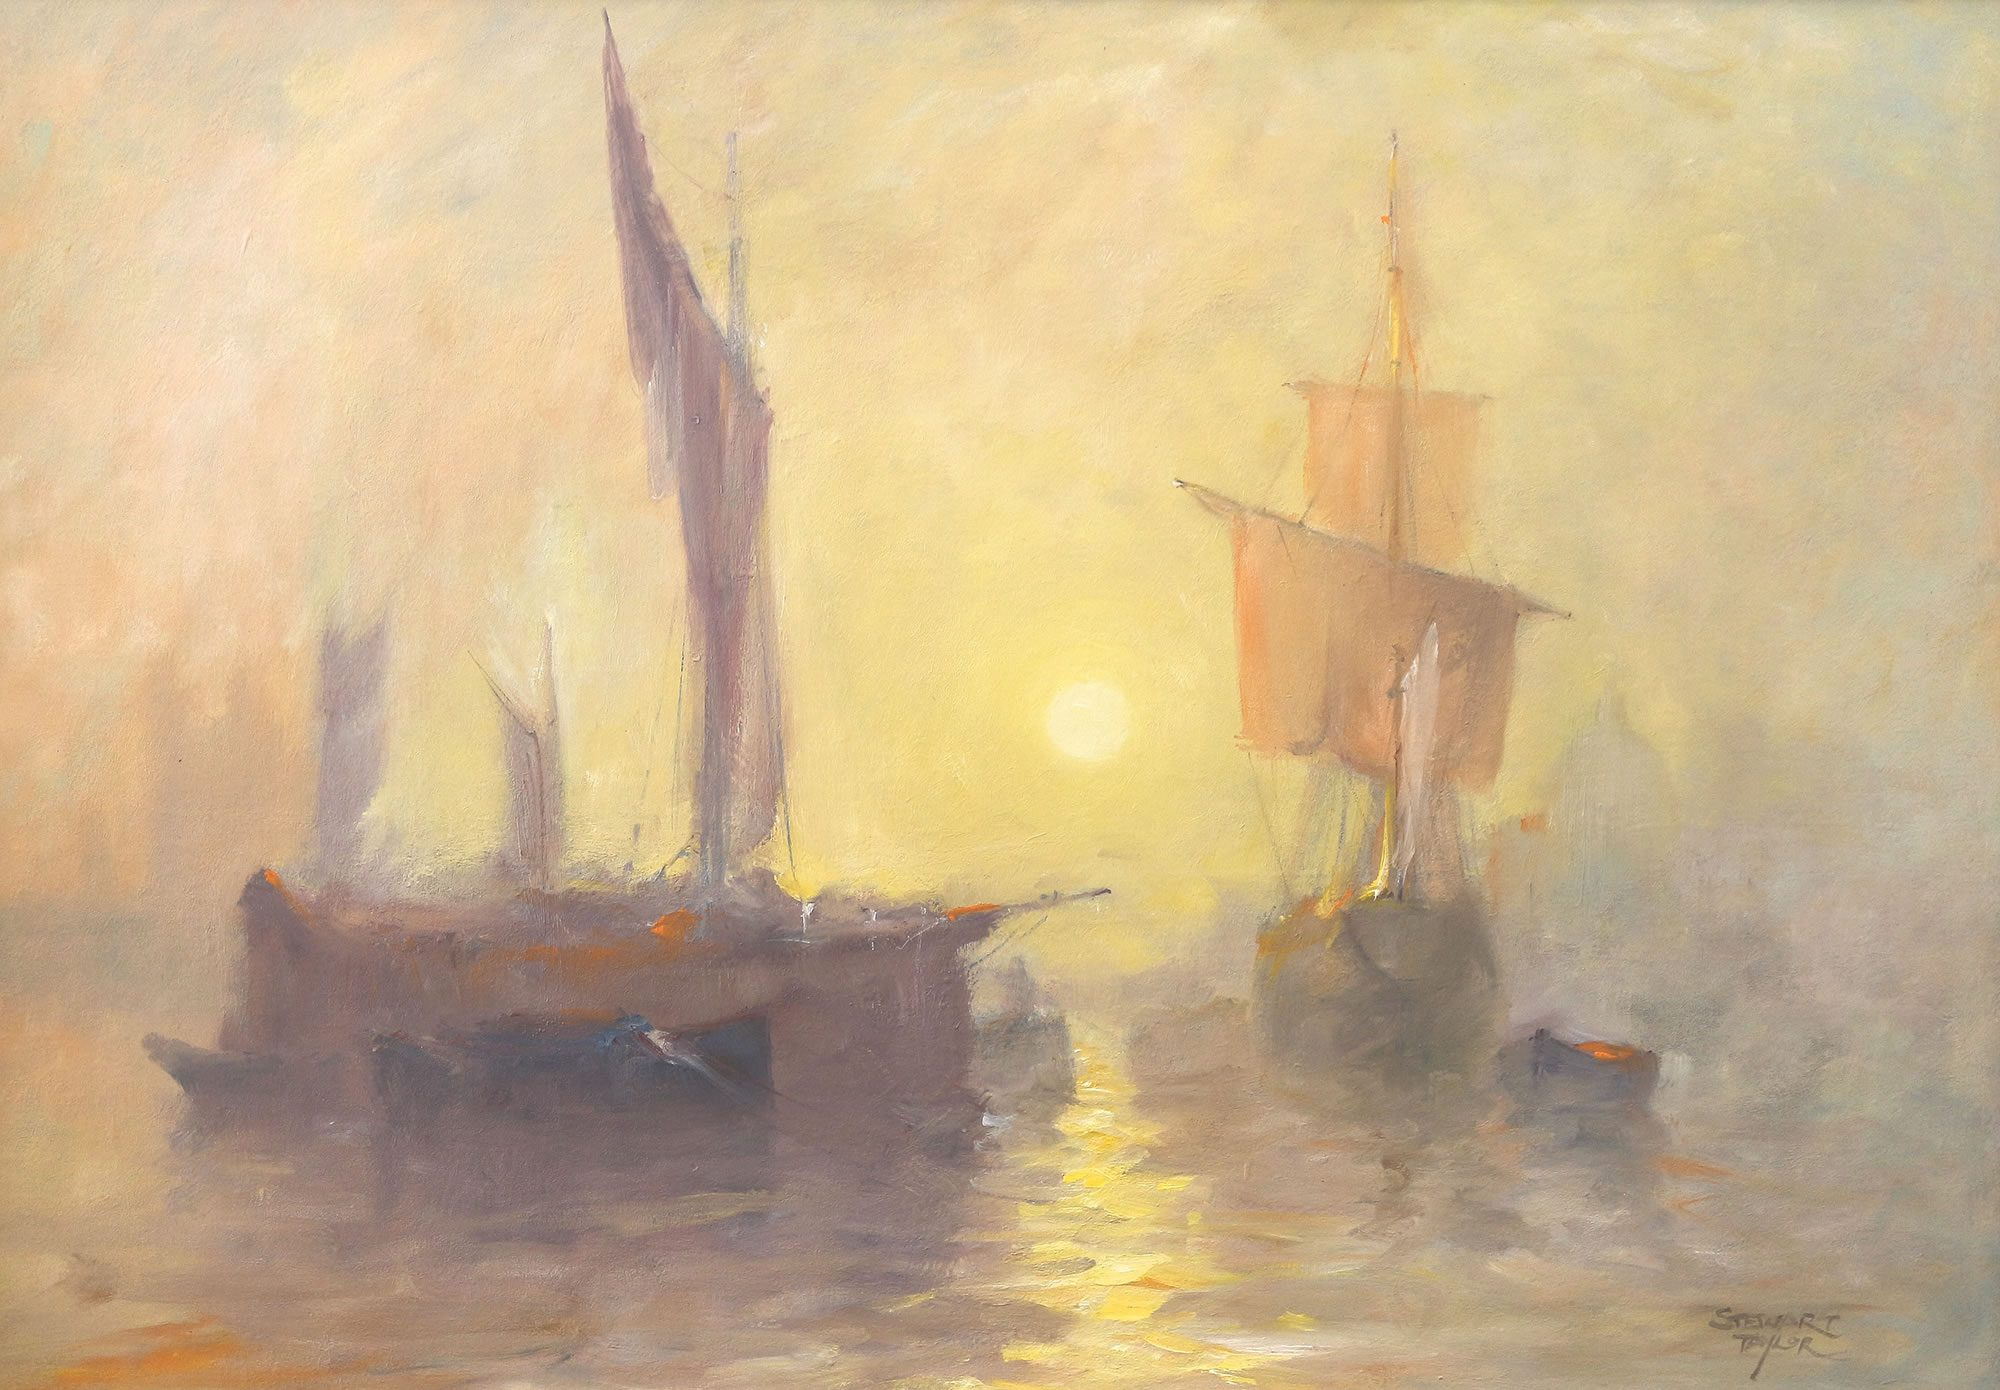 Romantic marine painting of sailing ships at sunrise